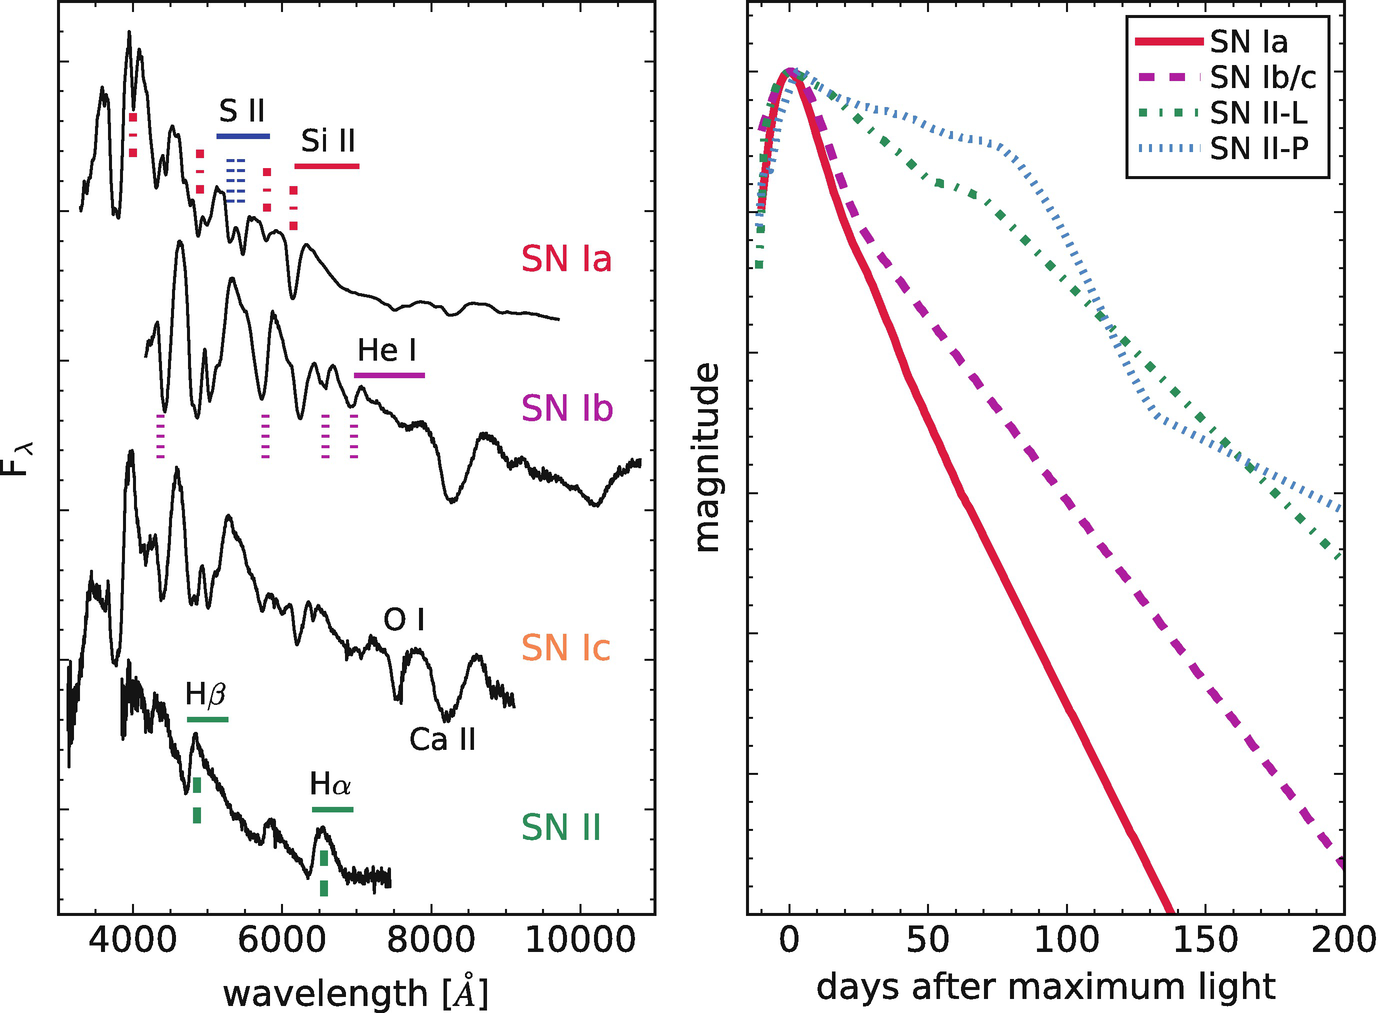 Neutron Stars Formation and Core Collapse Supernovae | SpringerLink